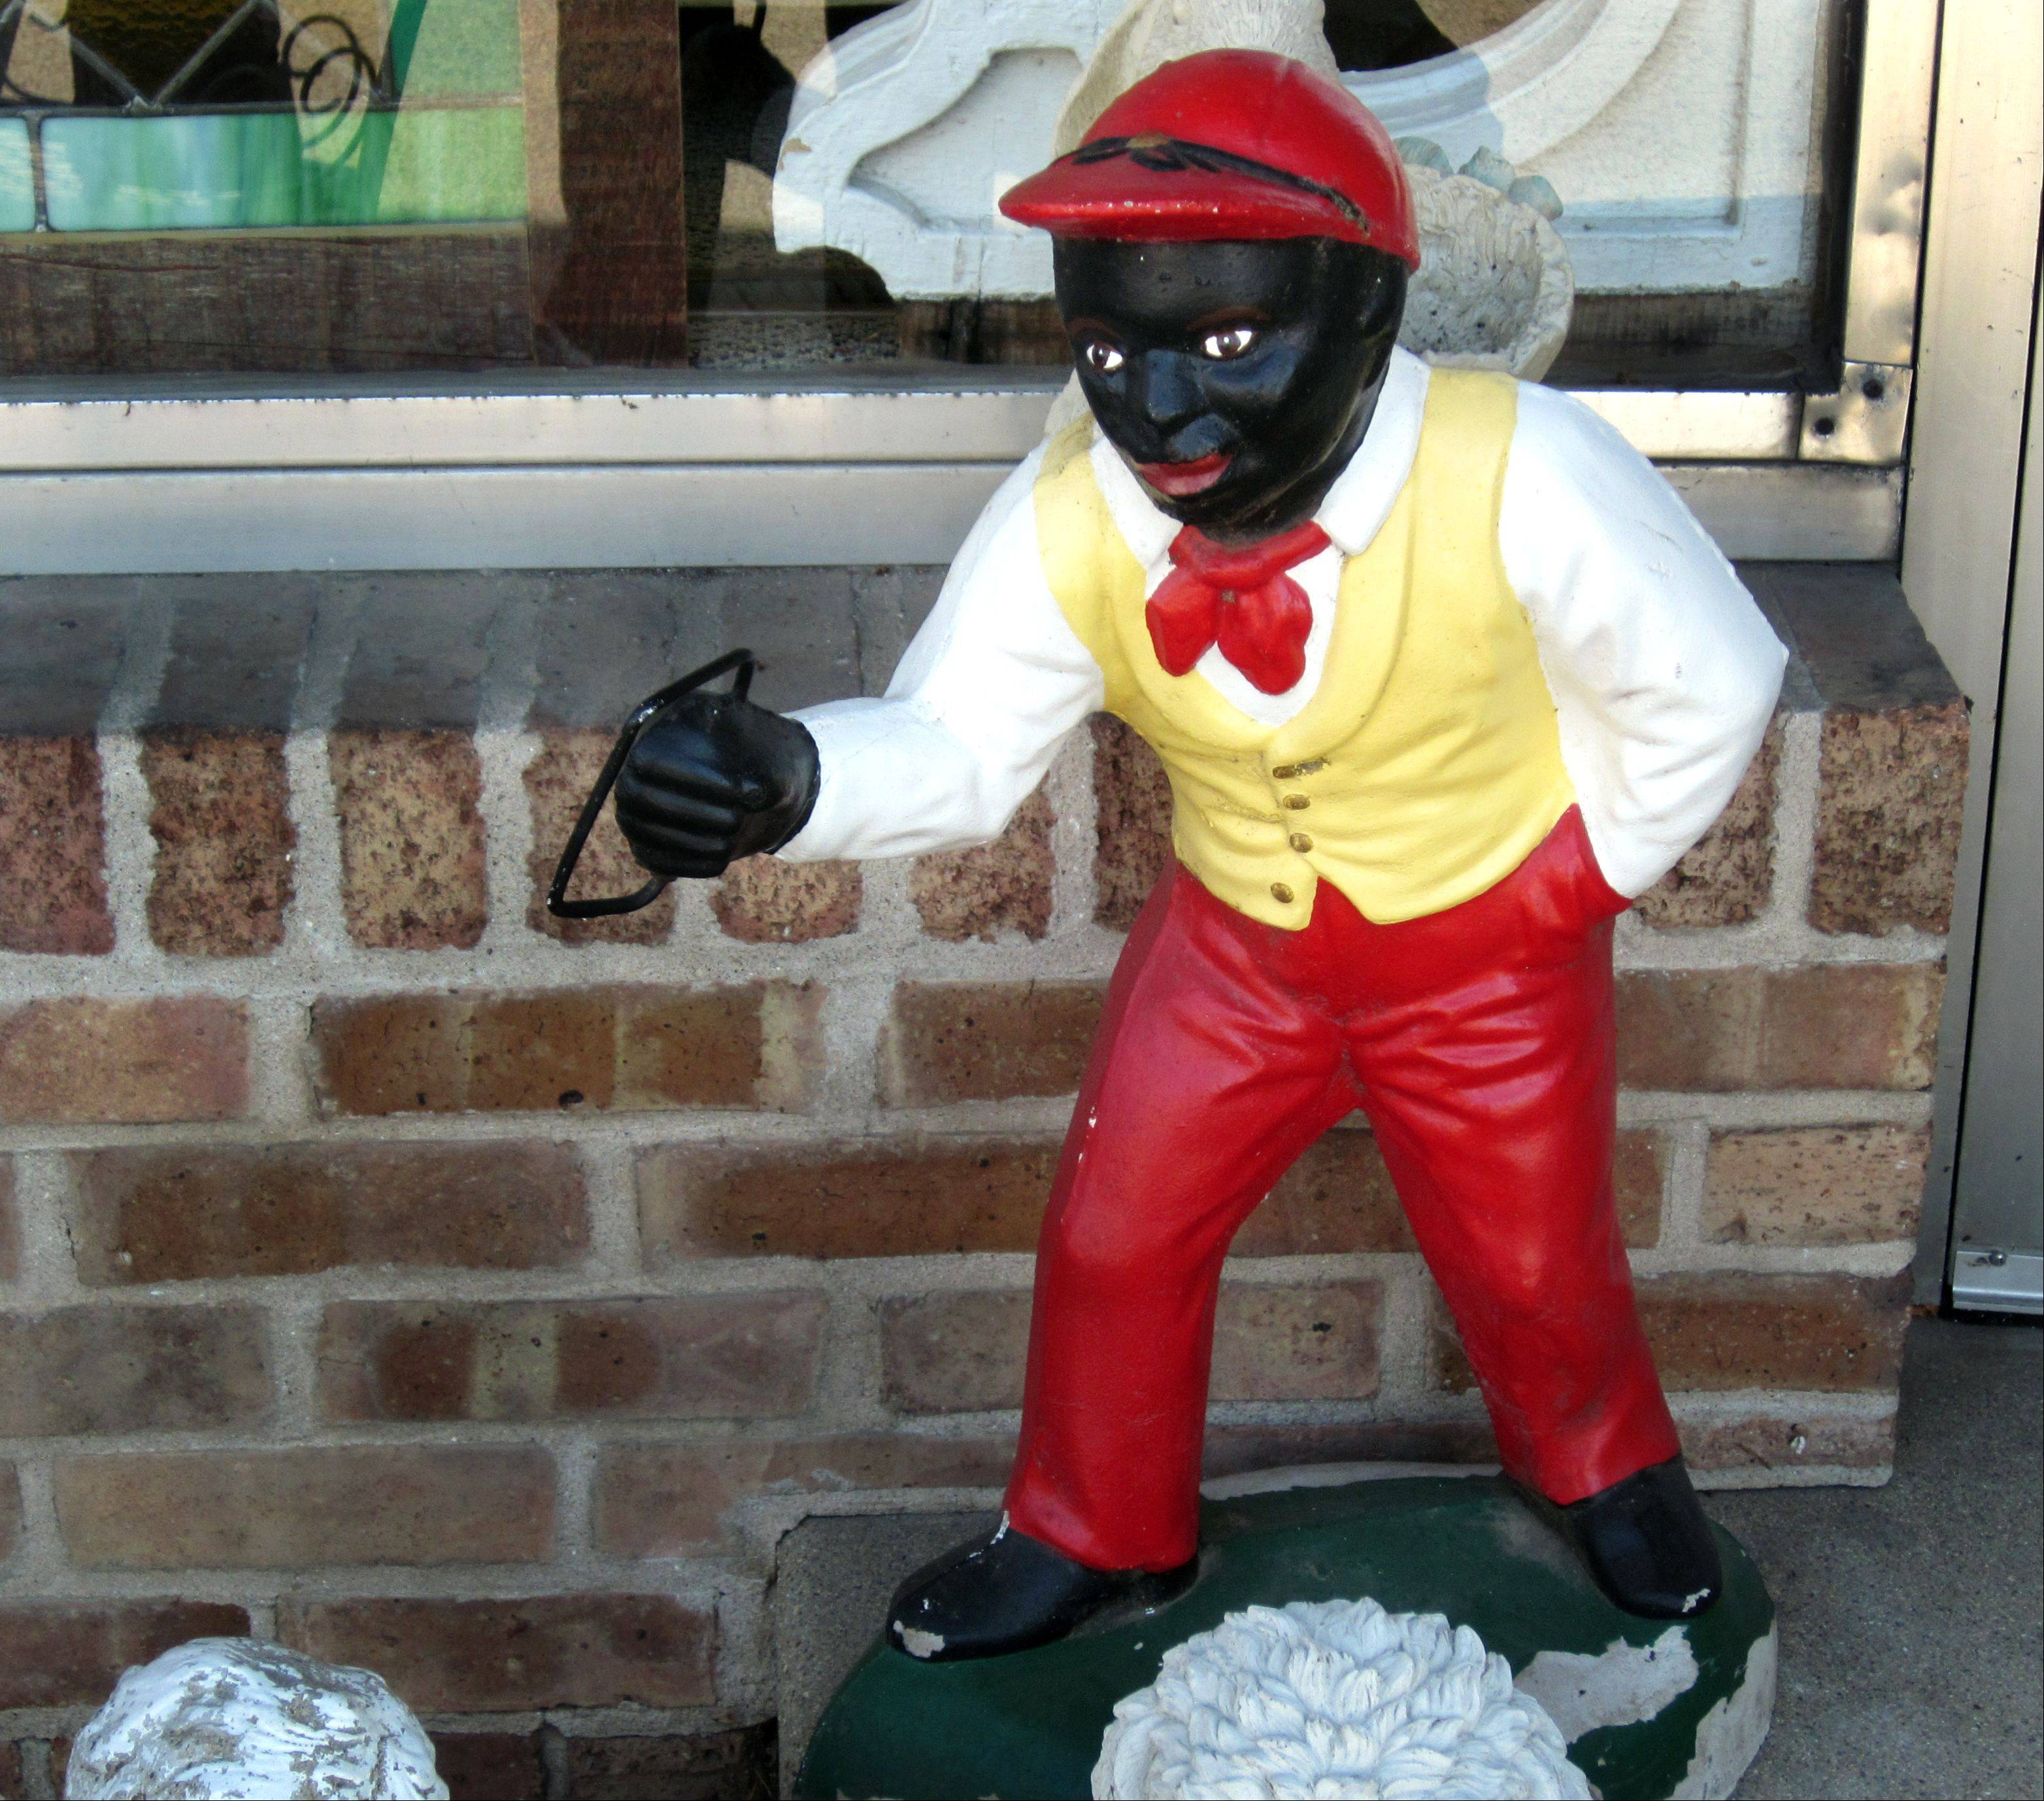 This lawn jockey statue in front of Tivoli Garden Antiques in downtown Barrington has sparked debate over whether it's a racist caricature or it honors the positive role such statues played in marking houses participating in the Underground Railroad.